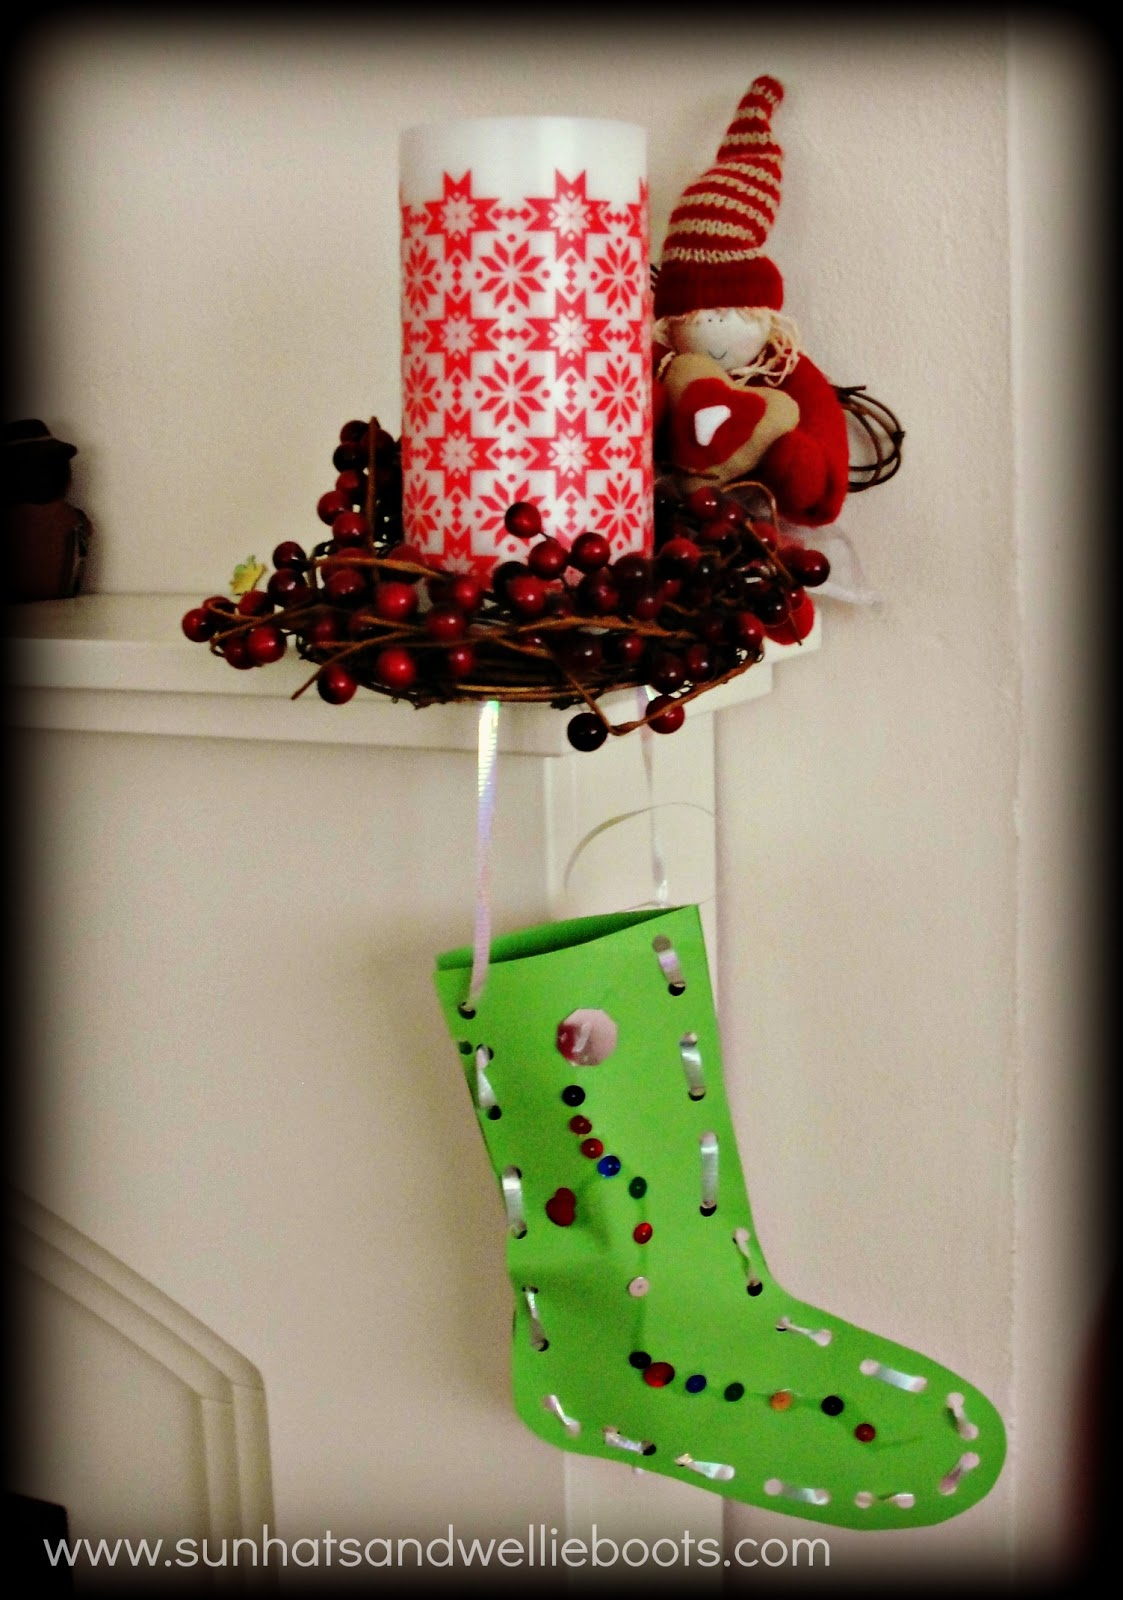 Sun Hats Wellie Boots Christmas Stockings Threading Decorations